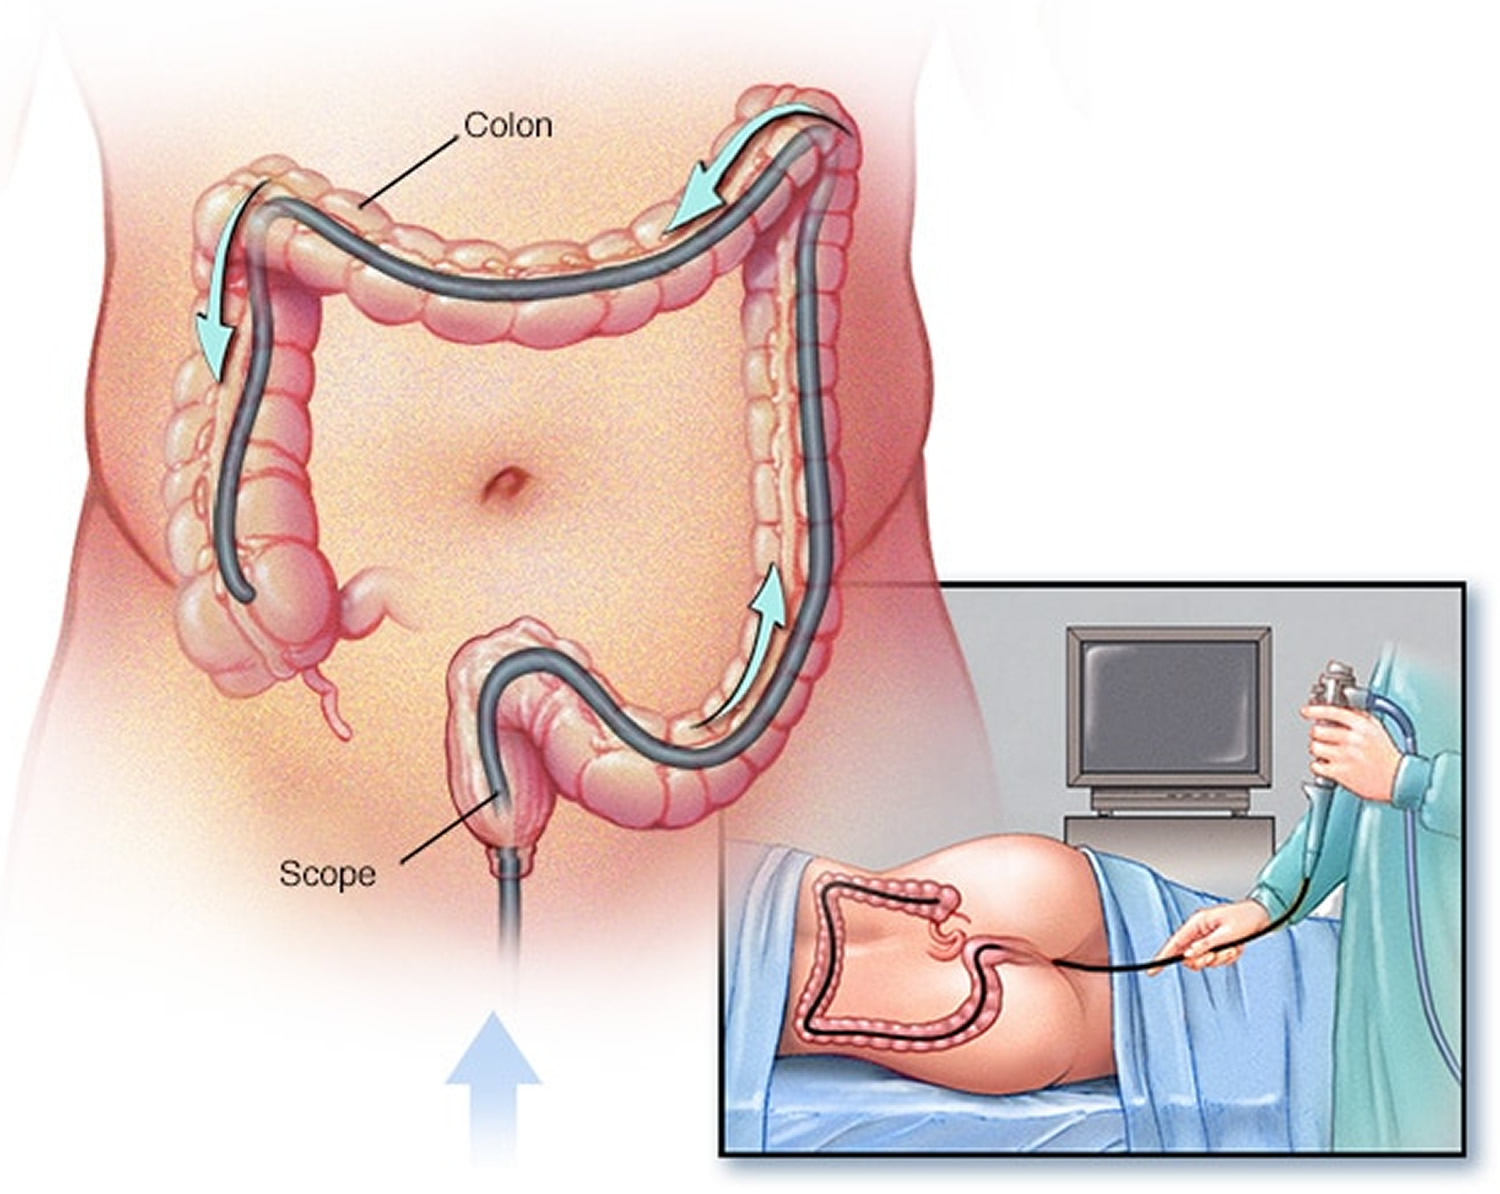 Colonoscopy Procedure Prep Diet Side Effects And Risks